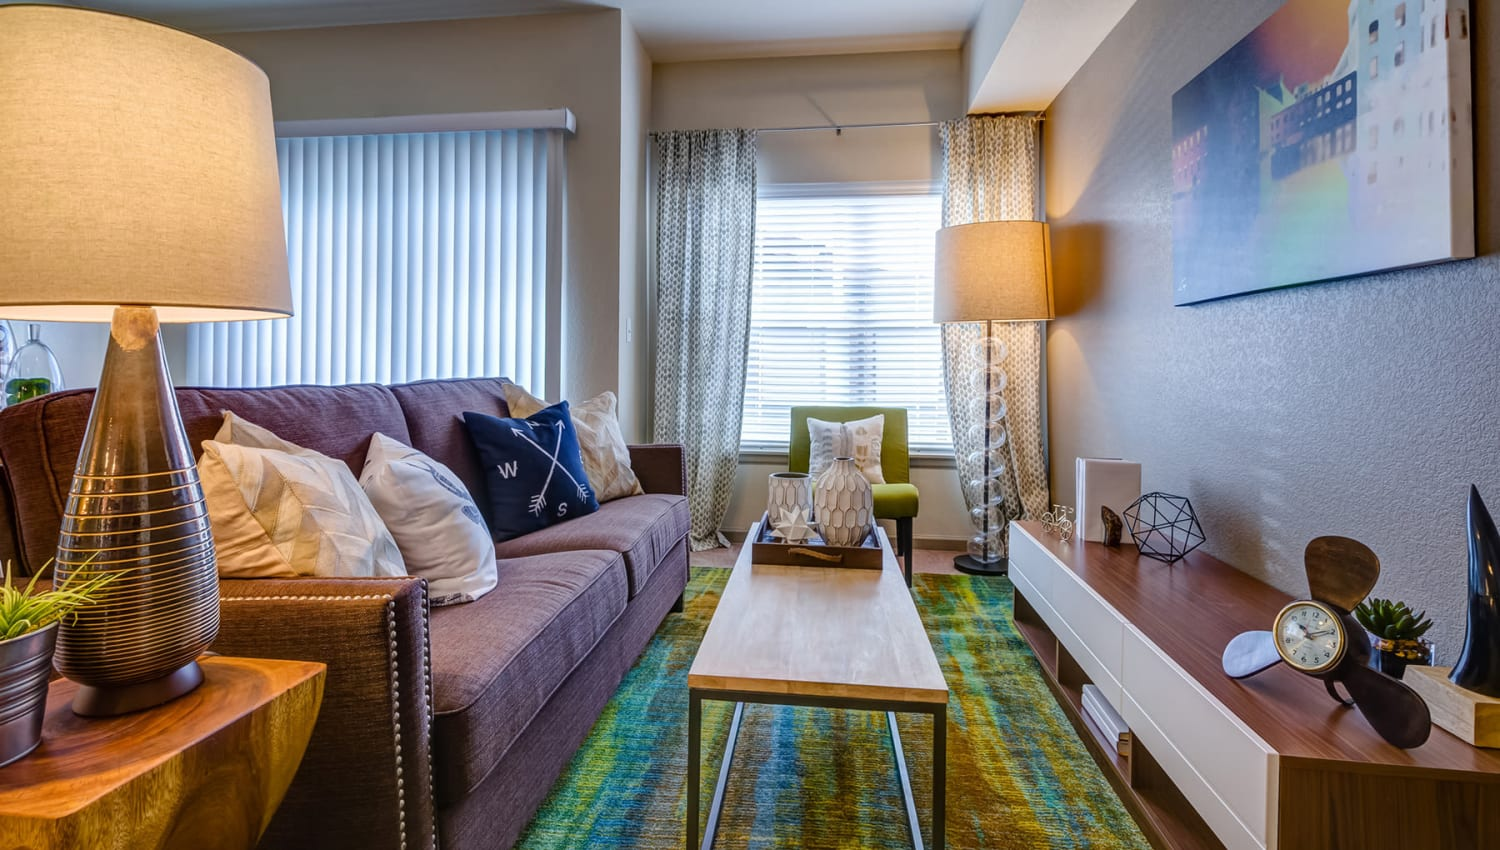 Well-furnished model apartment's living area at Granite 550 in Casper, Wyoming